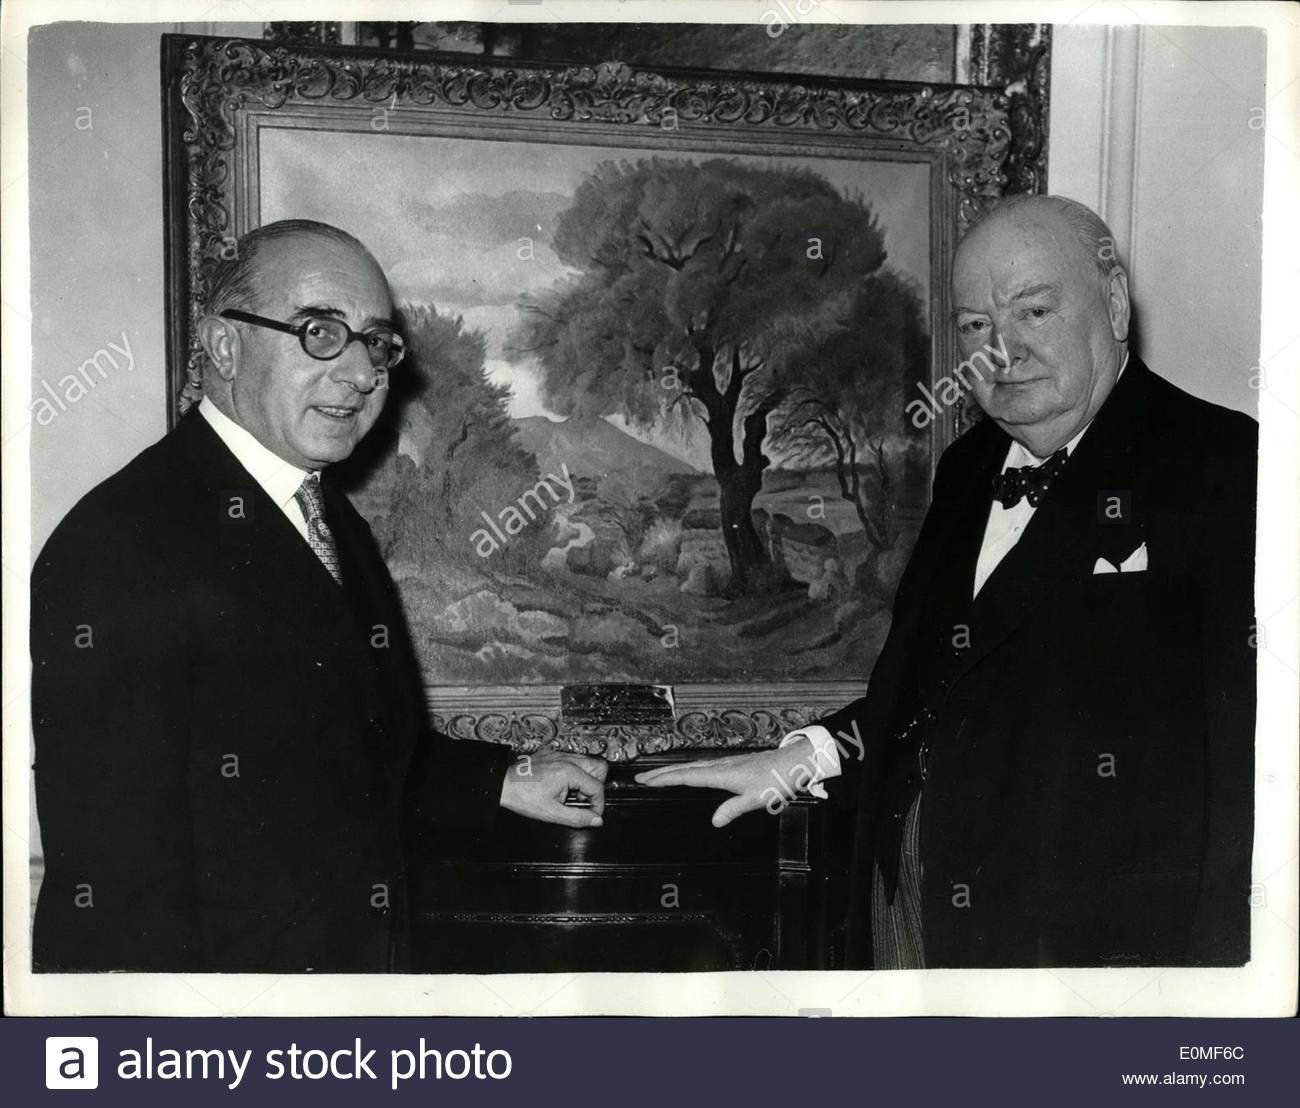 winston churchill 80th birthday picture ; winston-churchill-80th-birthday-picture-dec-12-1954-sir-winston-churchill-receives-another-birthday-gift-landscape-e0mf6c